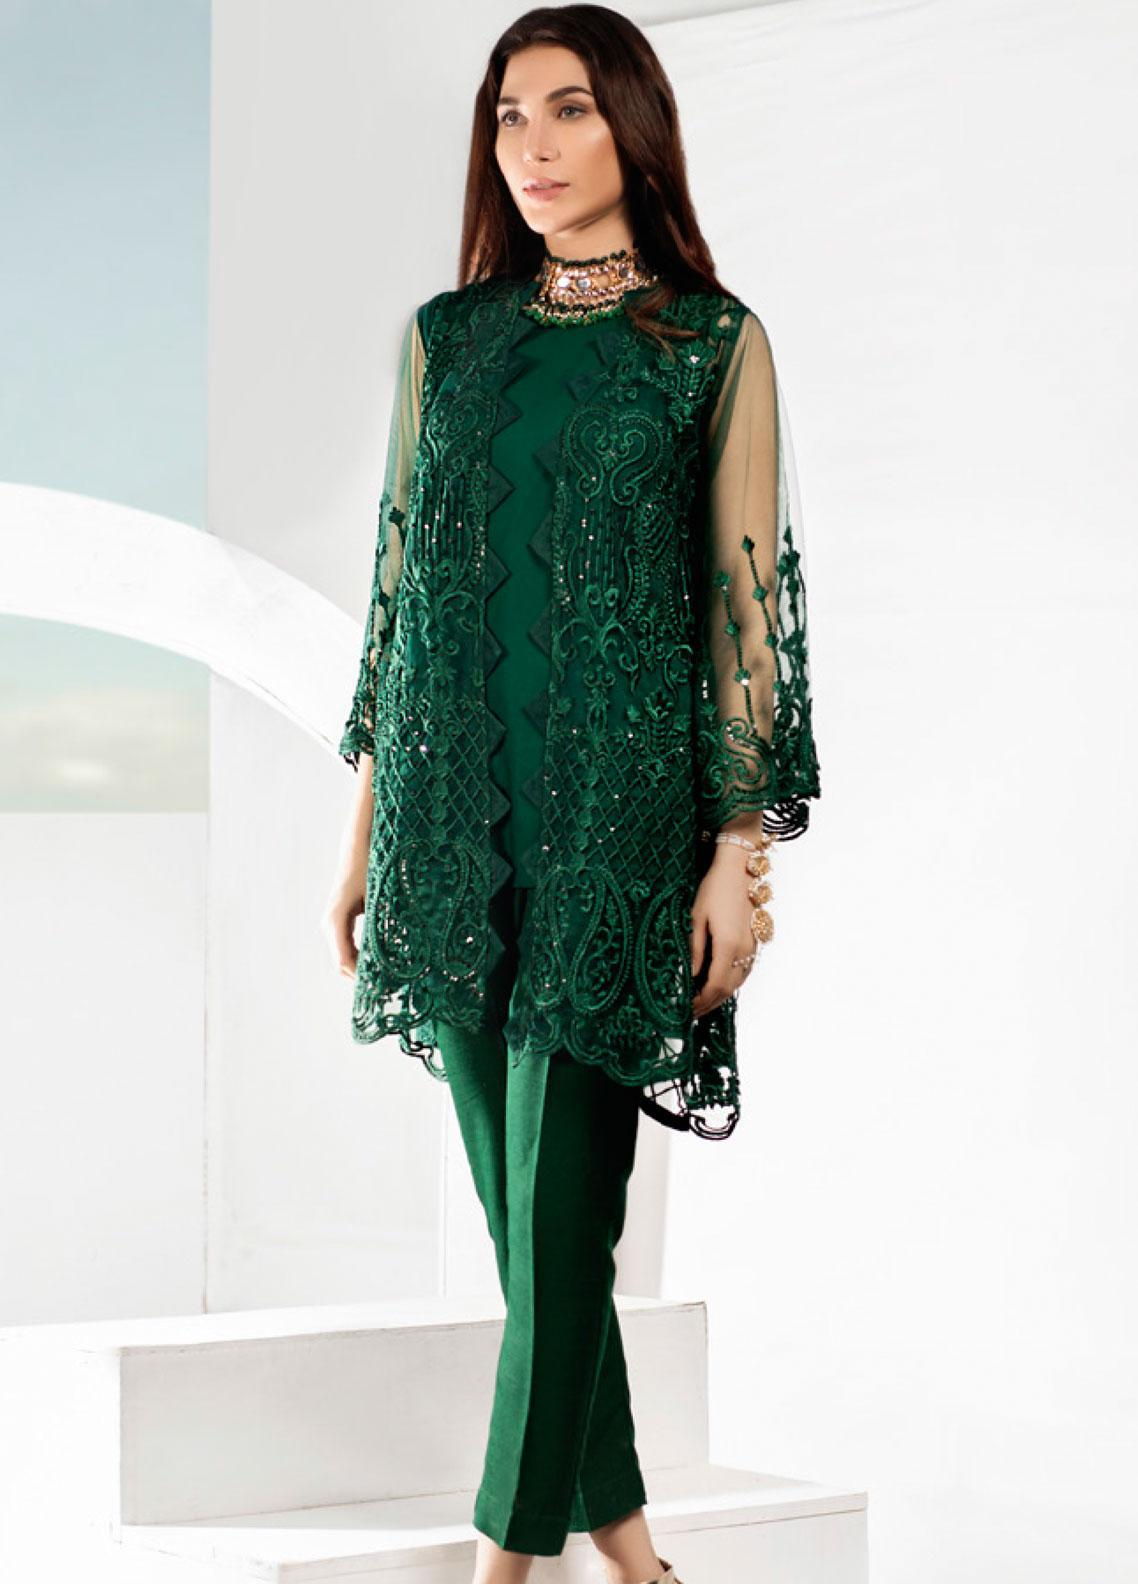 Azure Embroidered Zari Net Unstitched Kurties AZU19-E3 08 GEM AURORA - Luxury Formal Collection